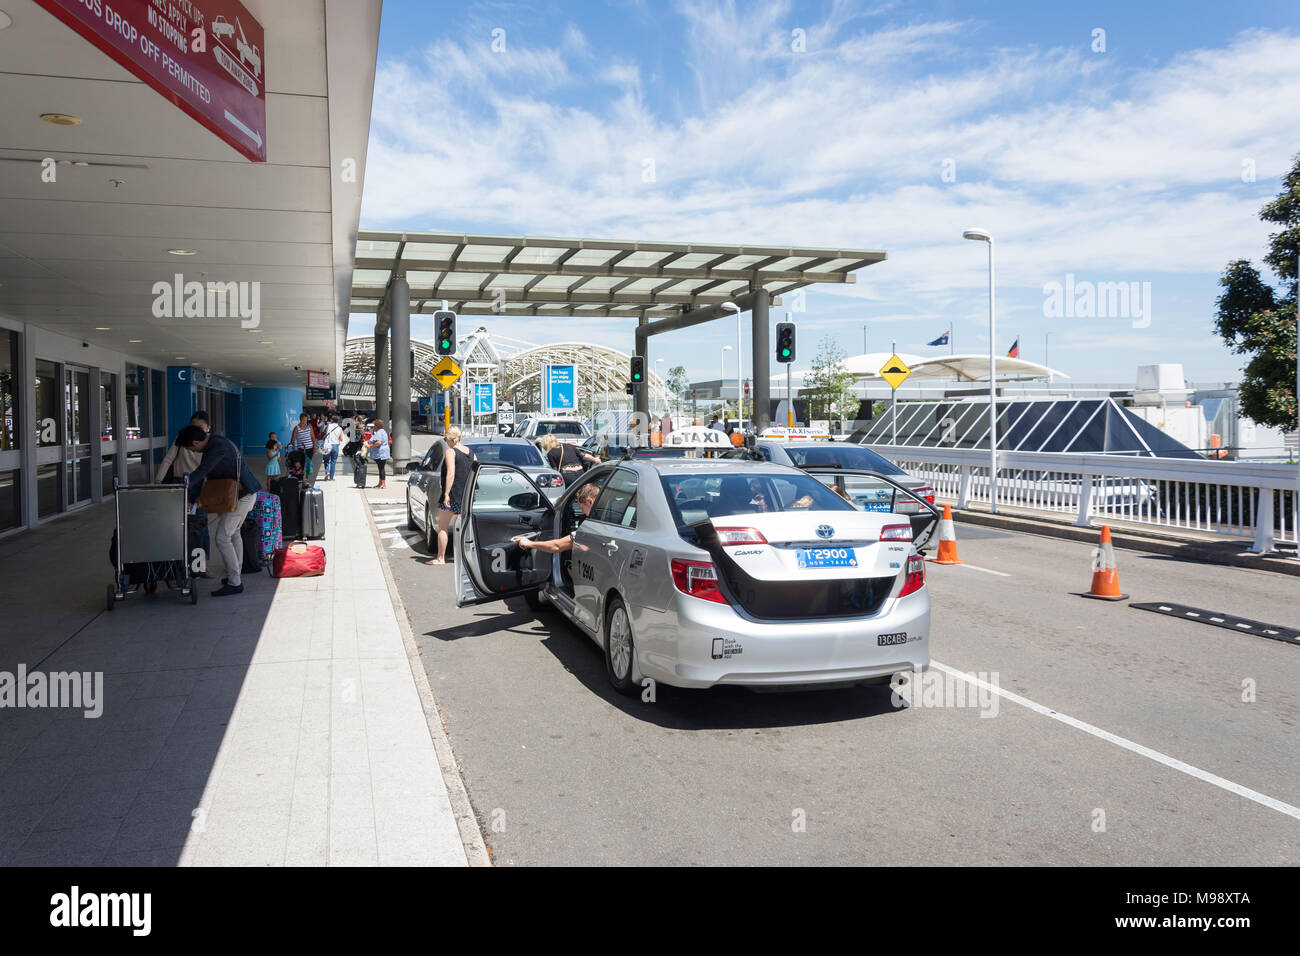 Departure level at Sydney Kingsford Smith Airport, Mascot, Sydney, New South Wales, Australia - Stock Image